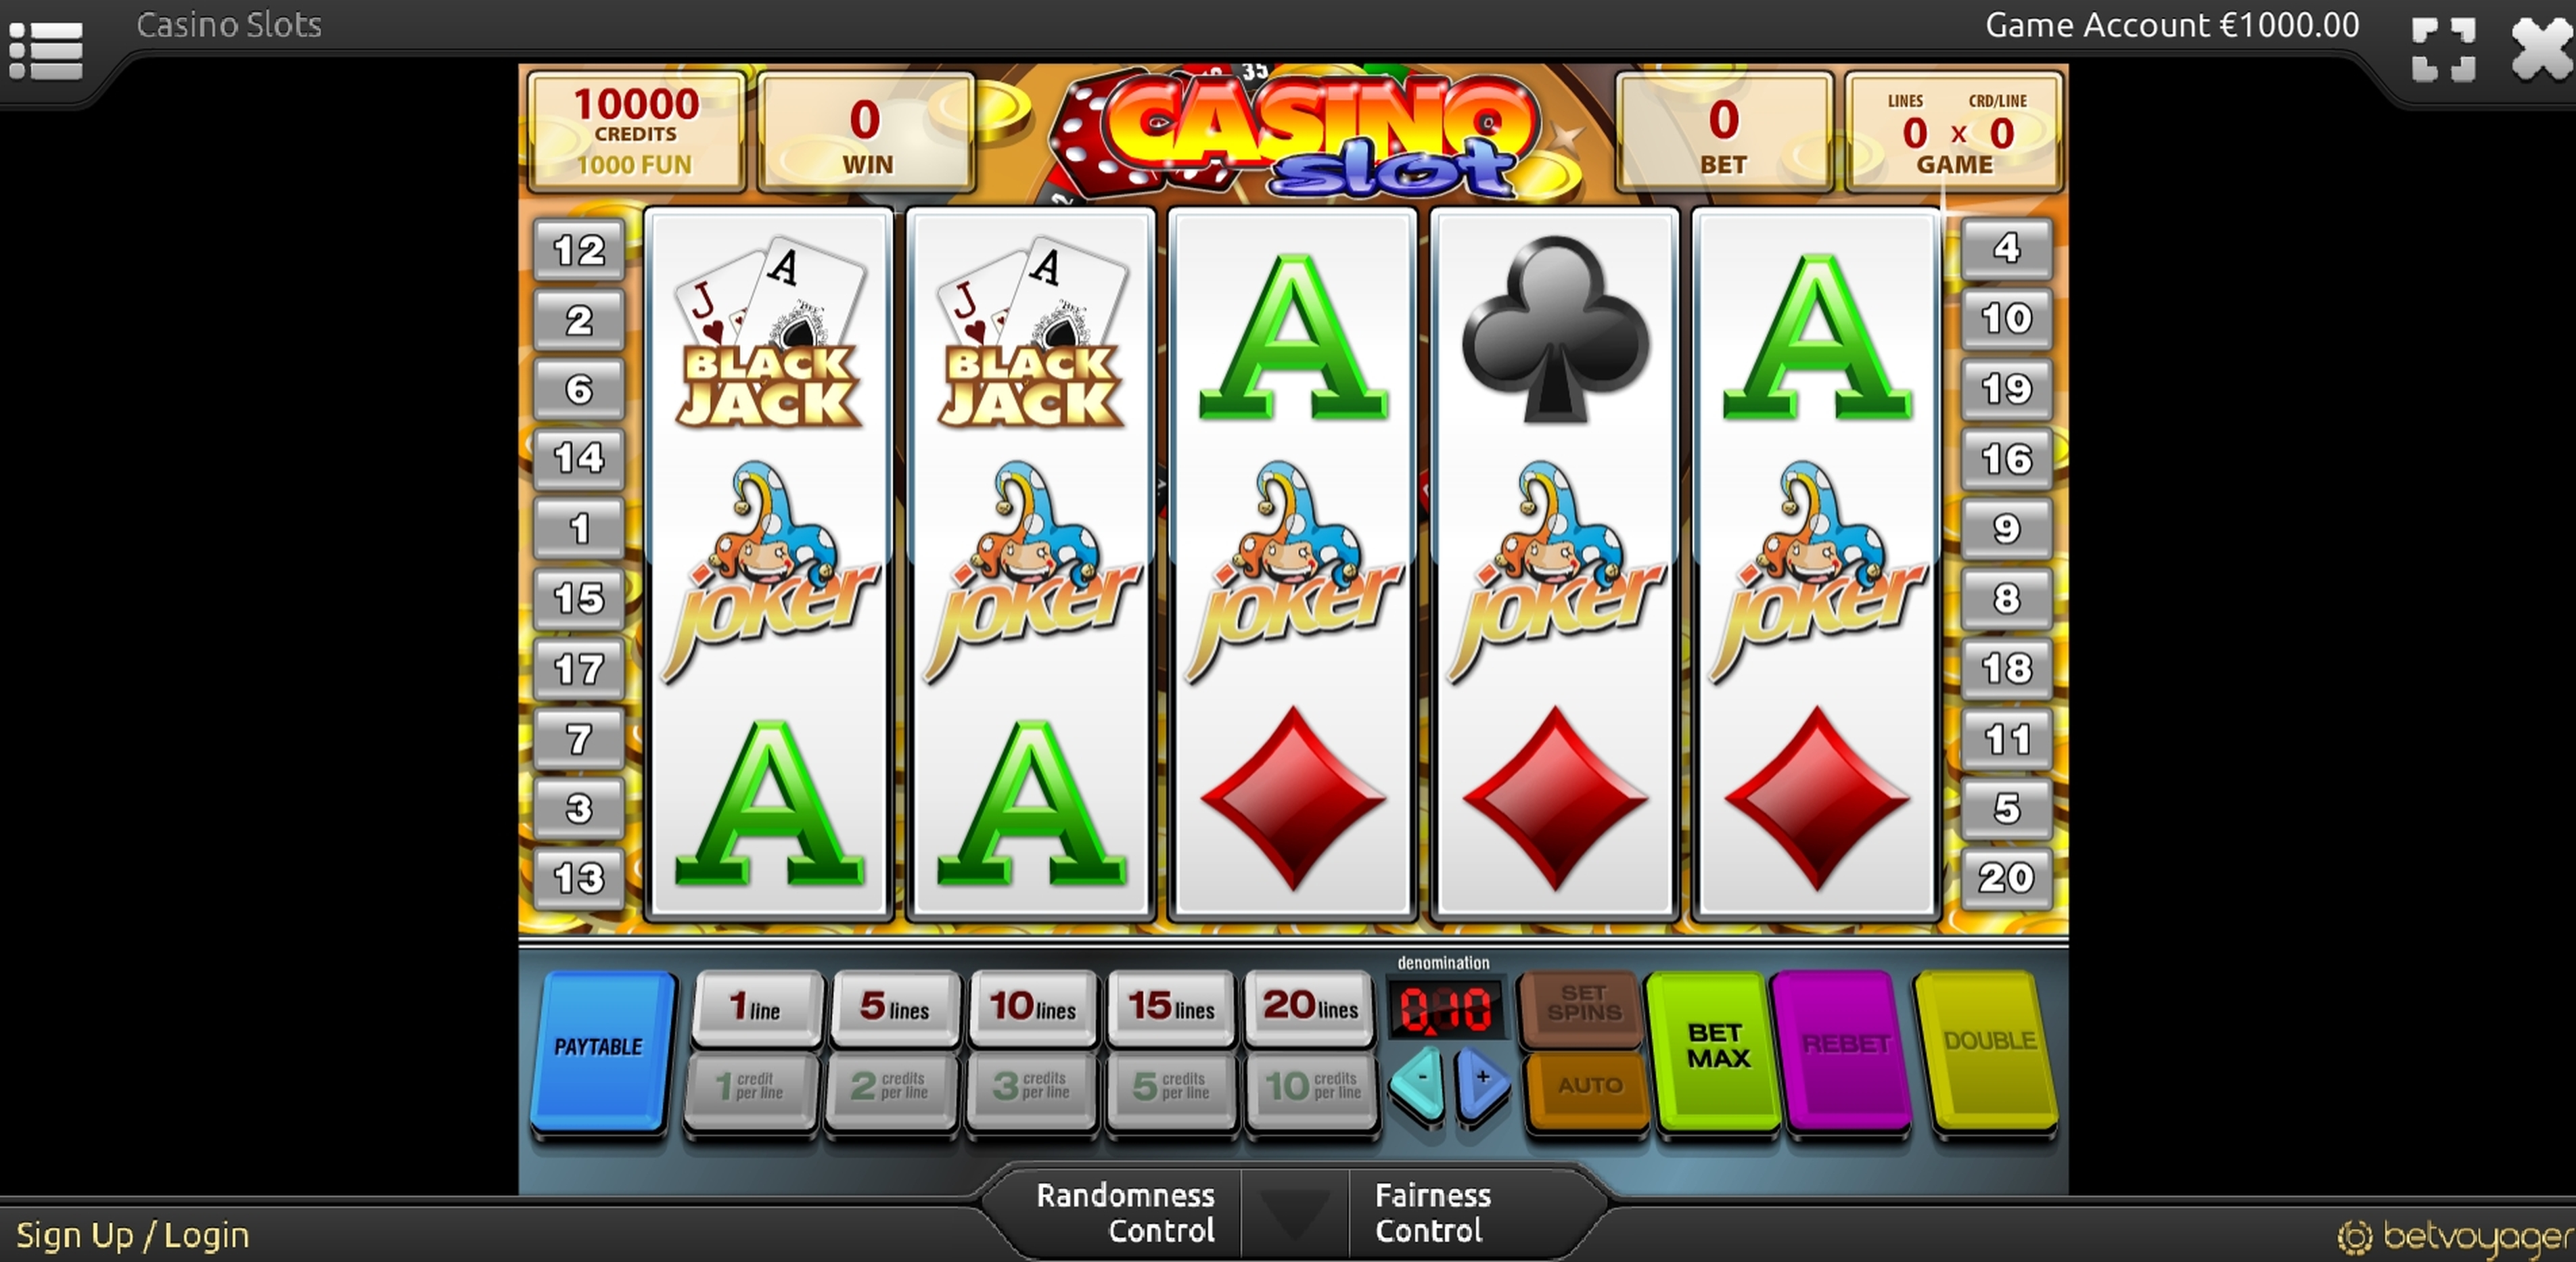 Reels in Casino Slot Slot Game by Smartsoft Gaming